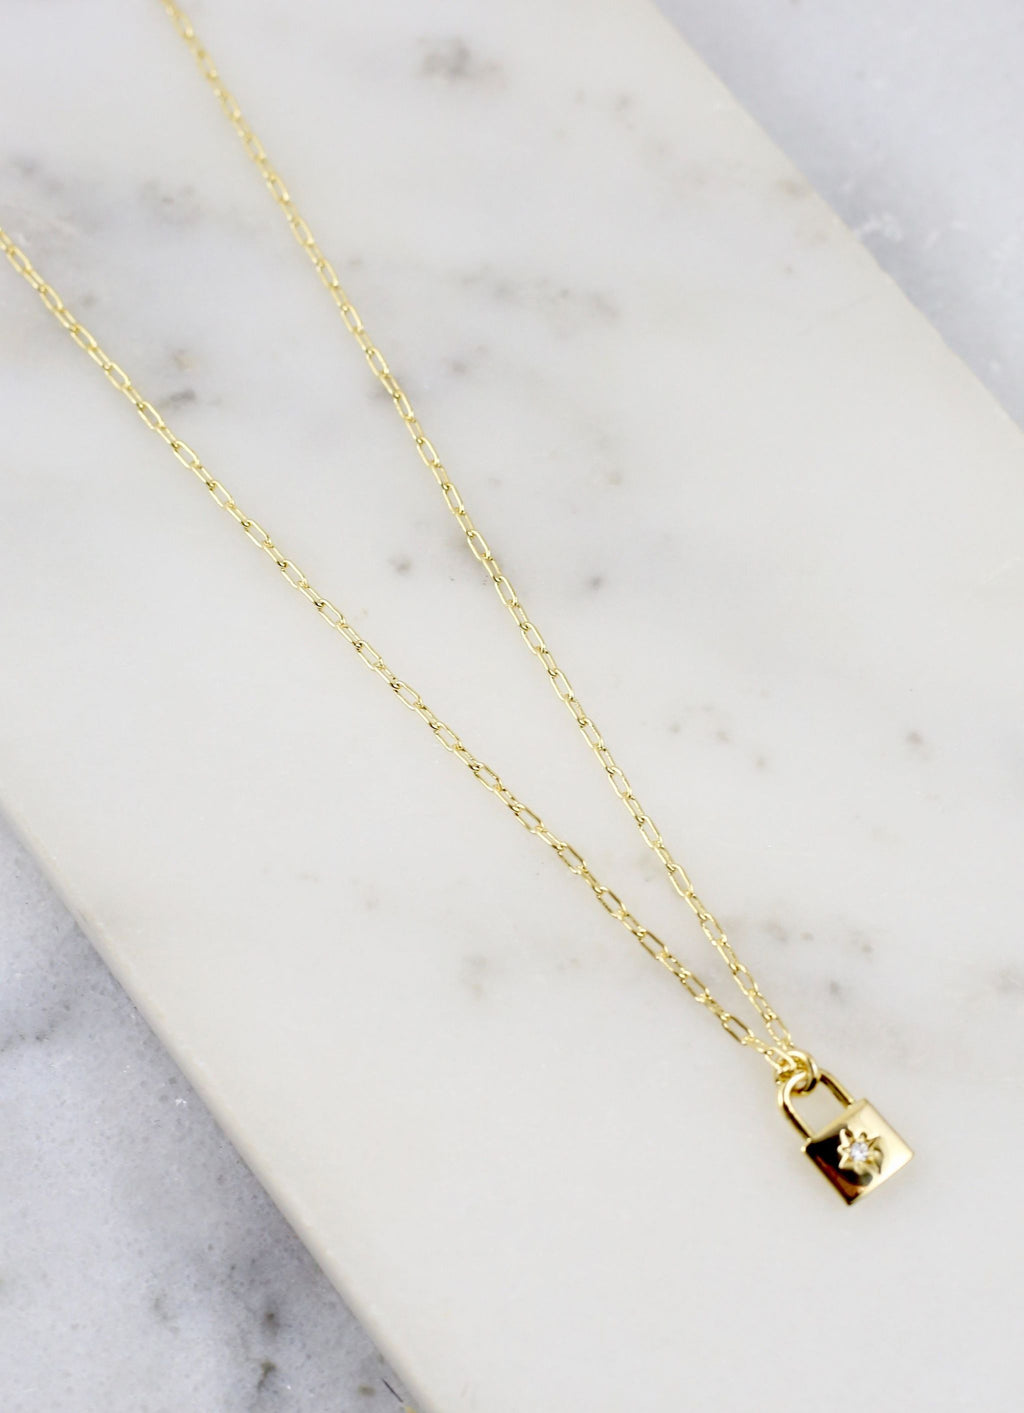 Galvin Cz Lock Necklace Gold - Caroline Hill